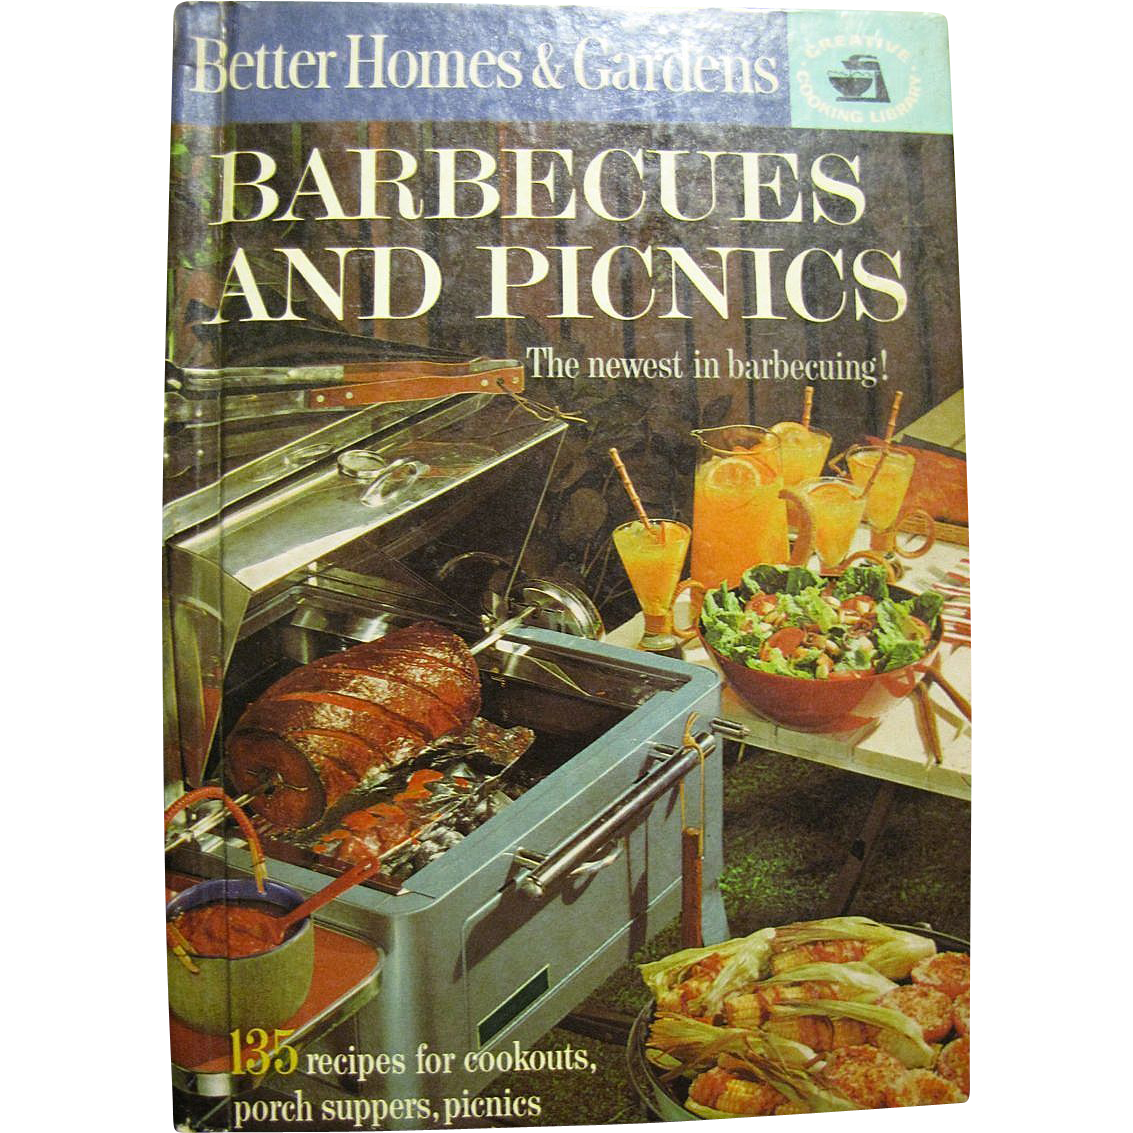 Better Homes Gardens: Better Homes And Gardens Barbecues And Picnics